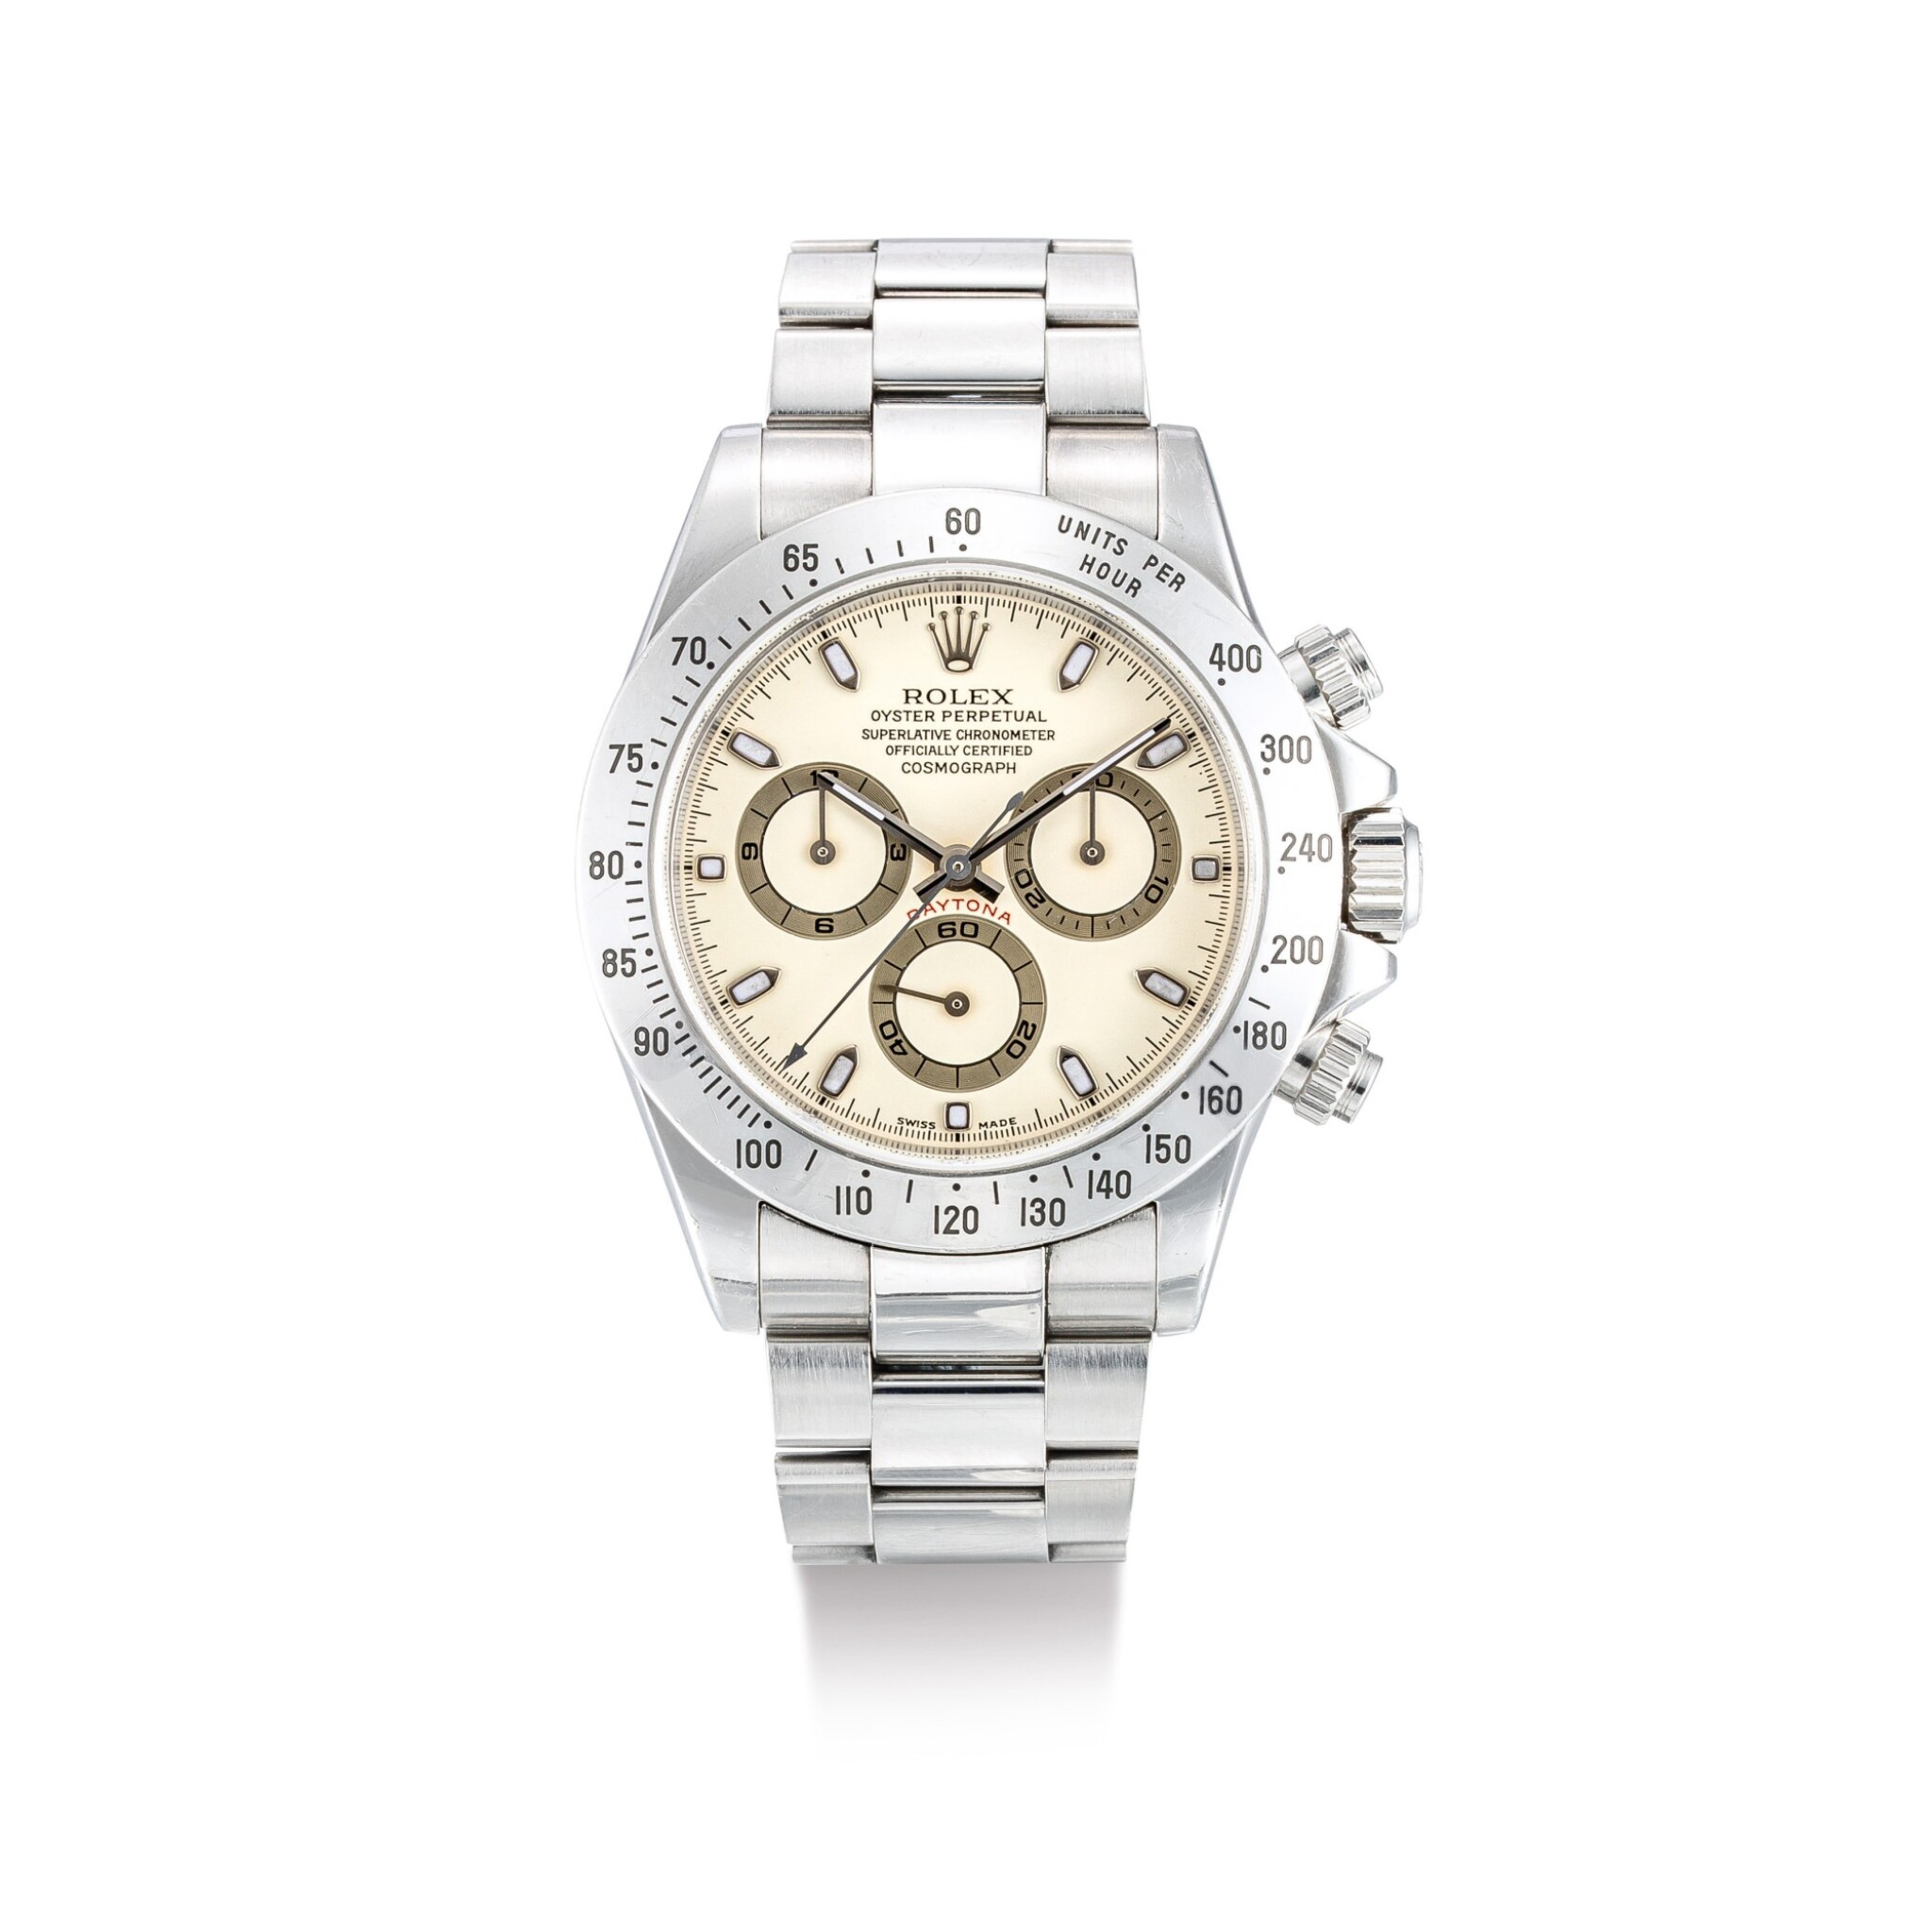 """View full screen - View 1 of Lot 2019. ROLEX   COSMOGRAPH DAYTONA, REFERENCE 116520, A STAINLESS STEEL CHRONOGRAPH WRISTWATCH WITH CREAM DIAL AND BRACELET, CIRCA 2000    勞力士   """"Cosmograph Daytona 型號116520  精鋼計時鏈帶腕錶,備杏色錶盤,錶殼編號K735916,約2000年製""""."""